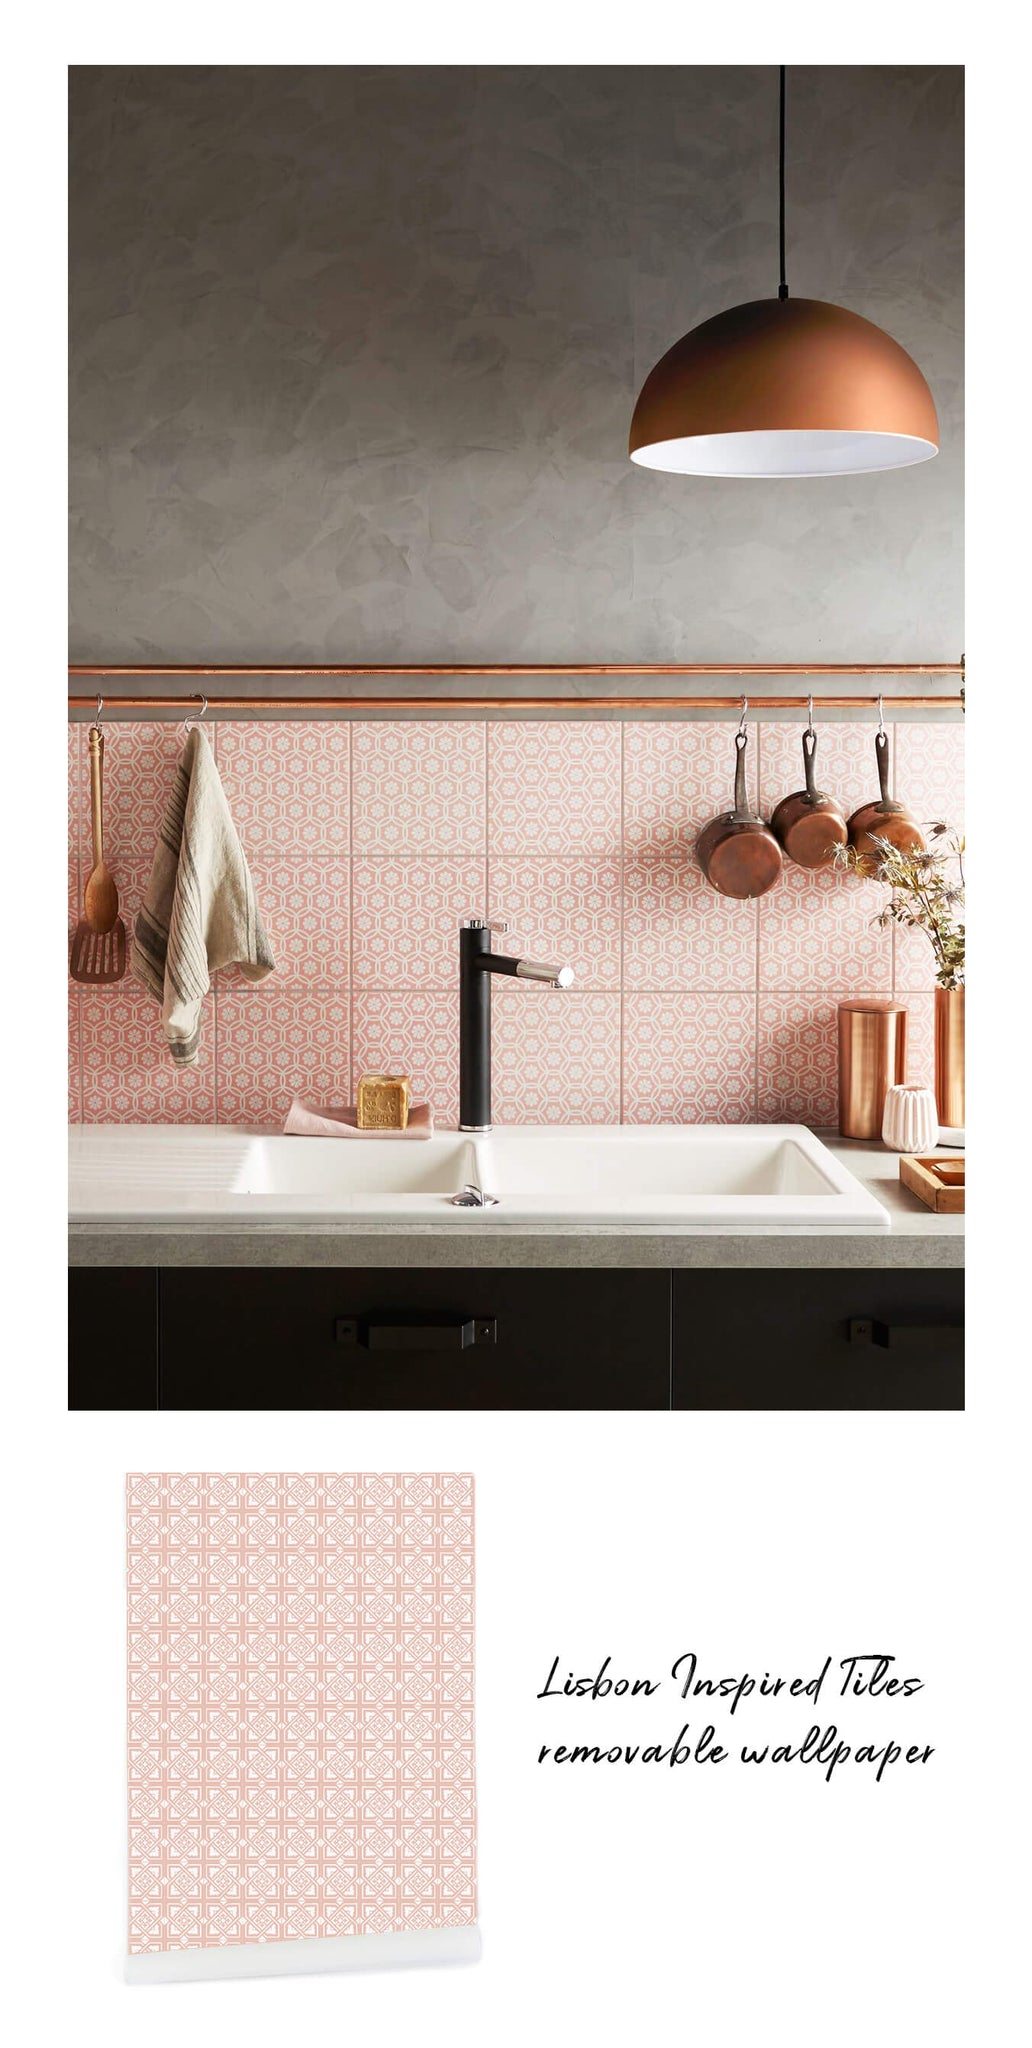 - Kitchen Design Ideas - Get The Look With Livette's Wallpaper